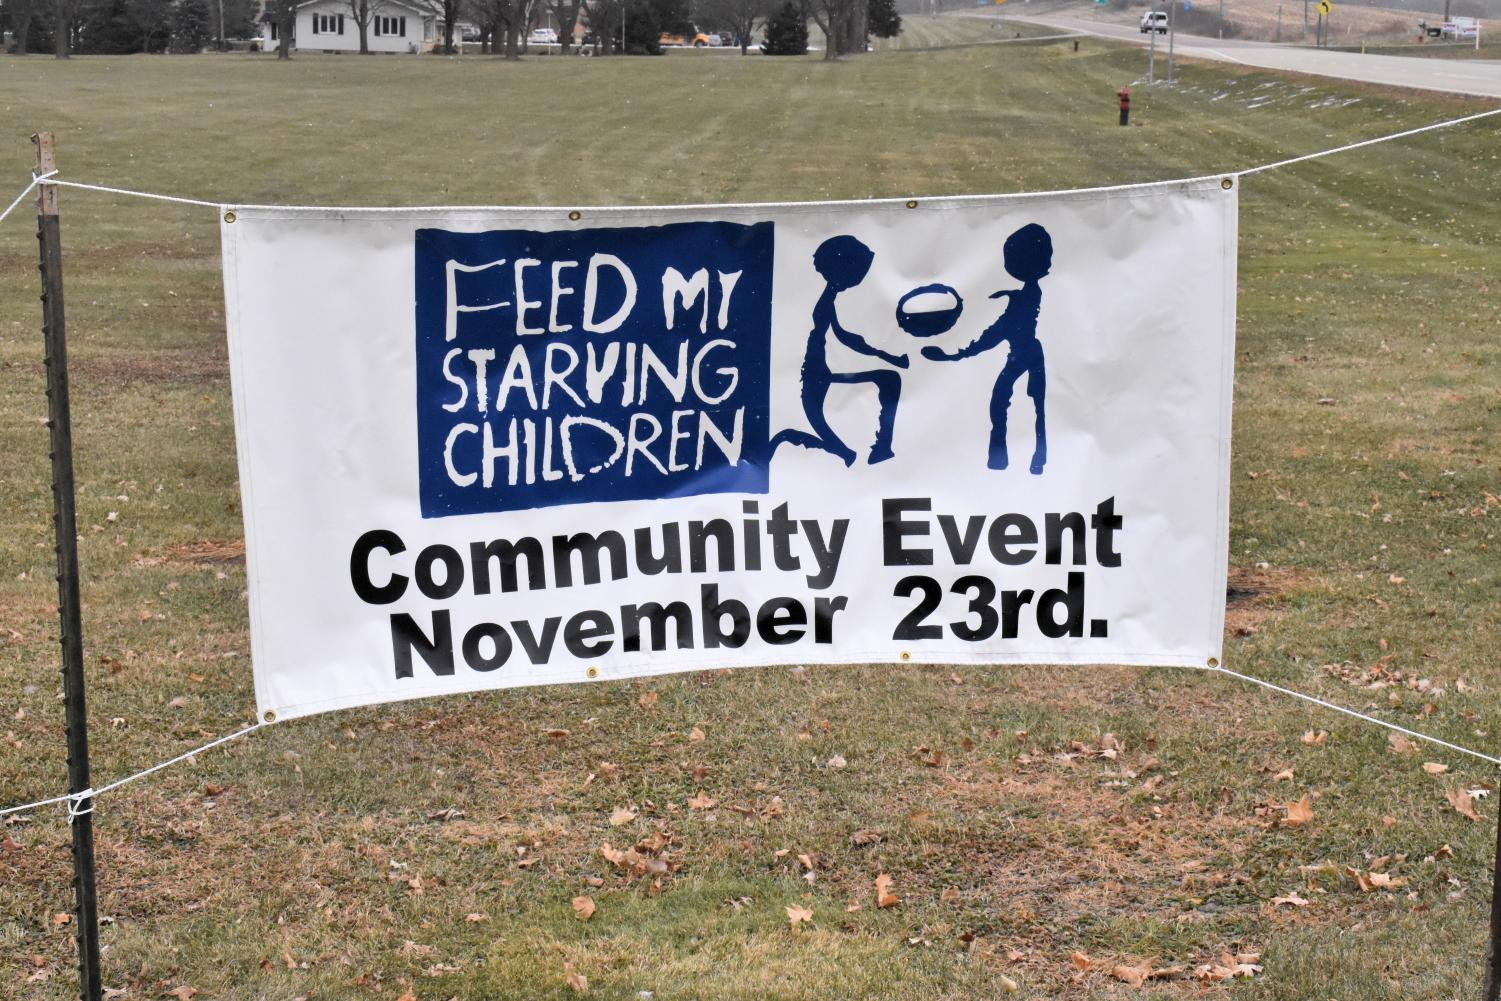 Feed My Starving Children will be hosting their annual packing event on November 23.